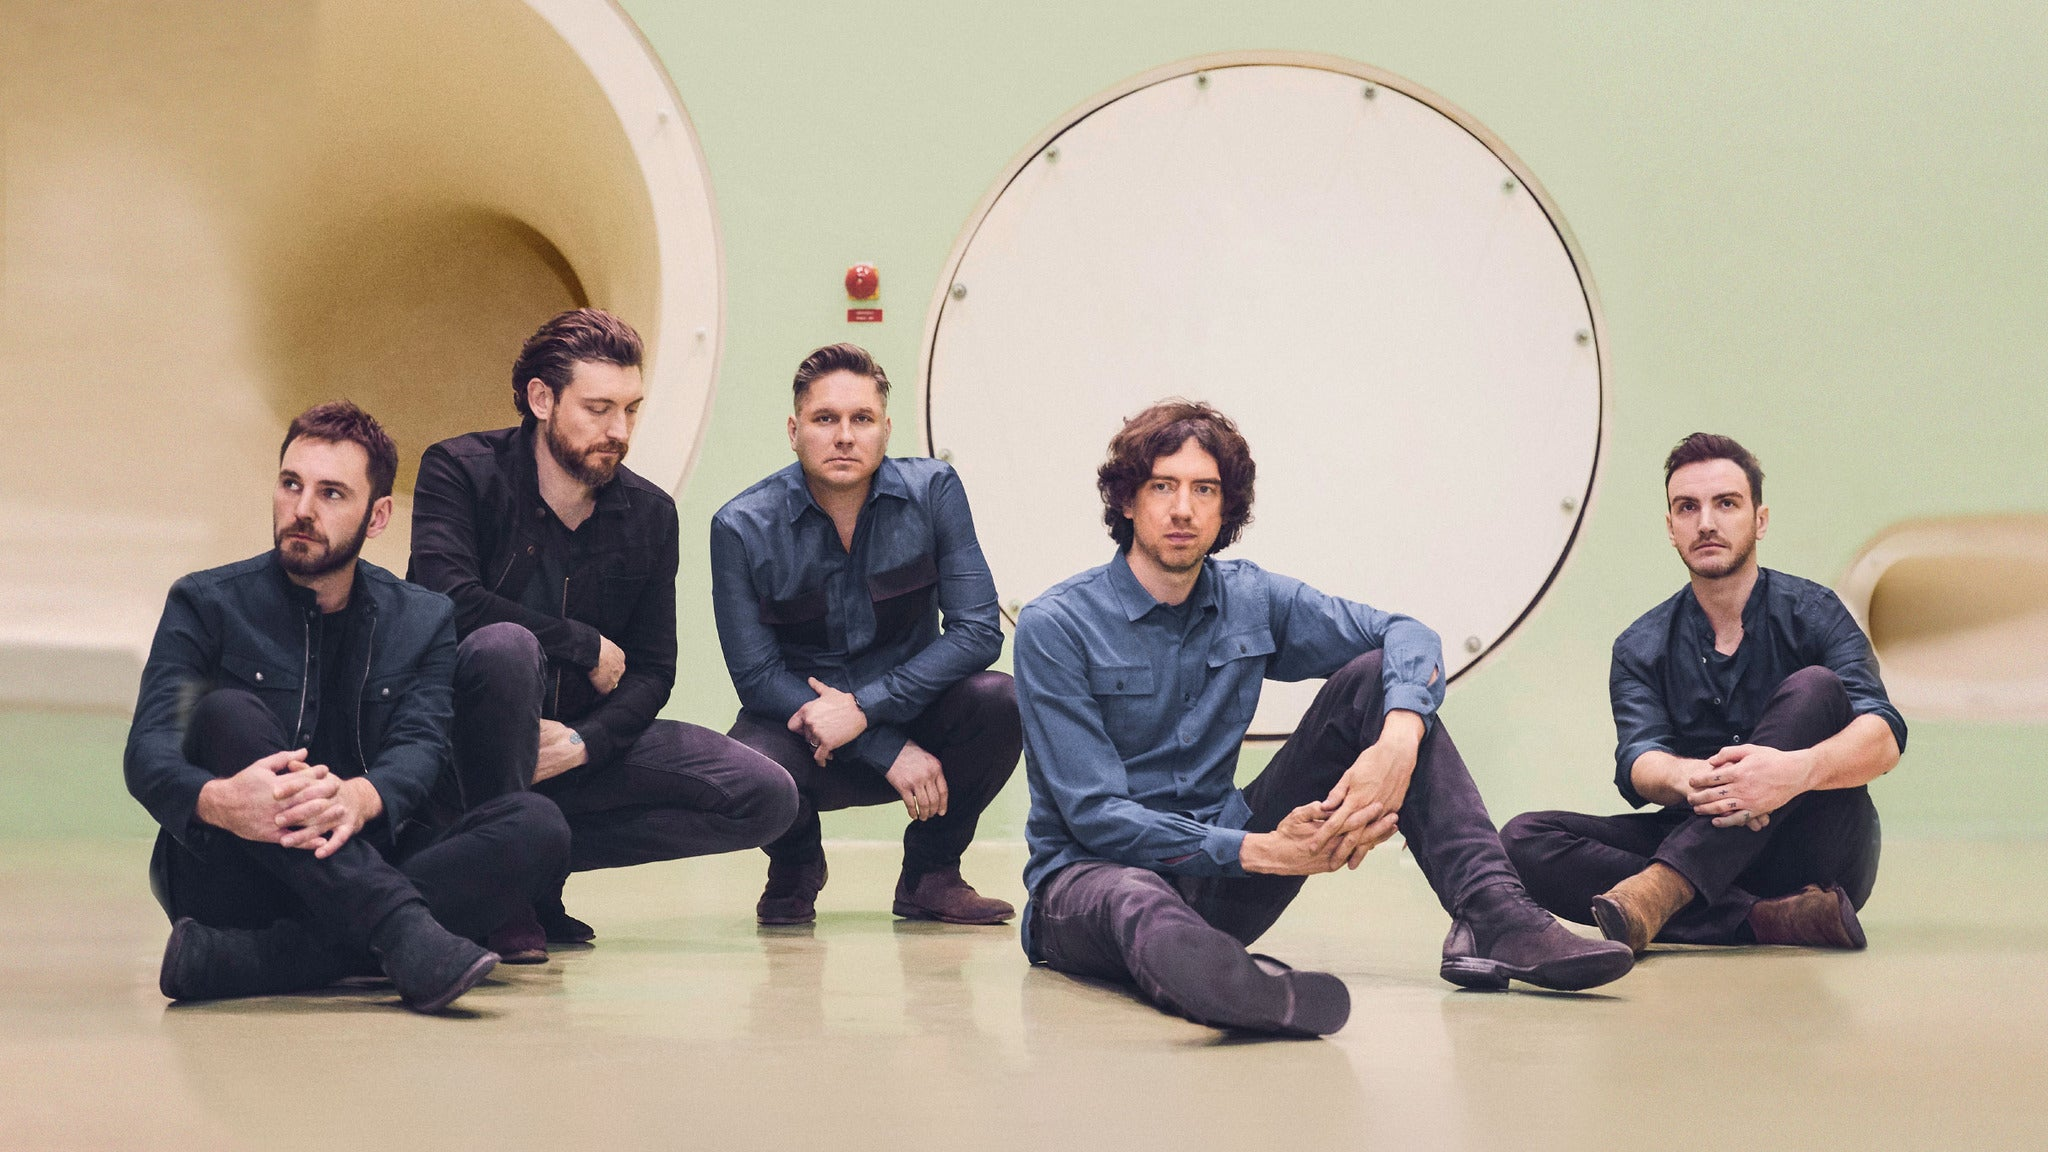 Snow Patrol Acoustic Tour at Paramount Theatre - Denver, CO 80202